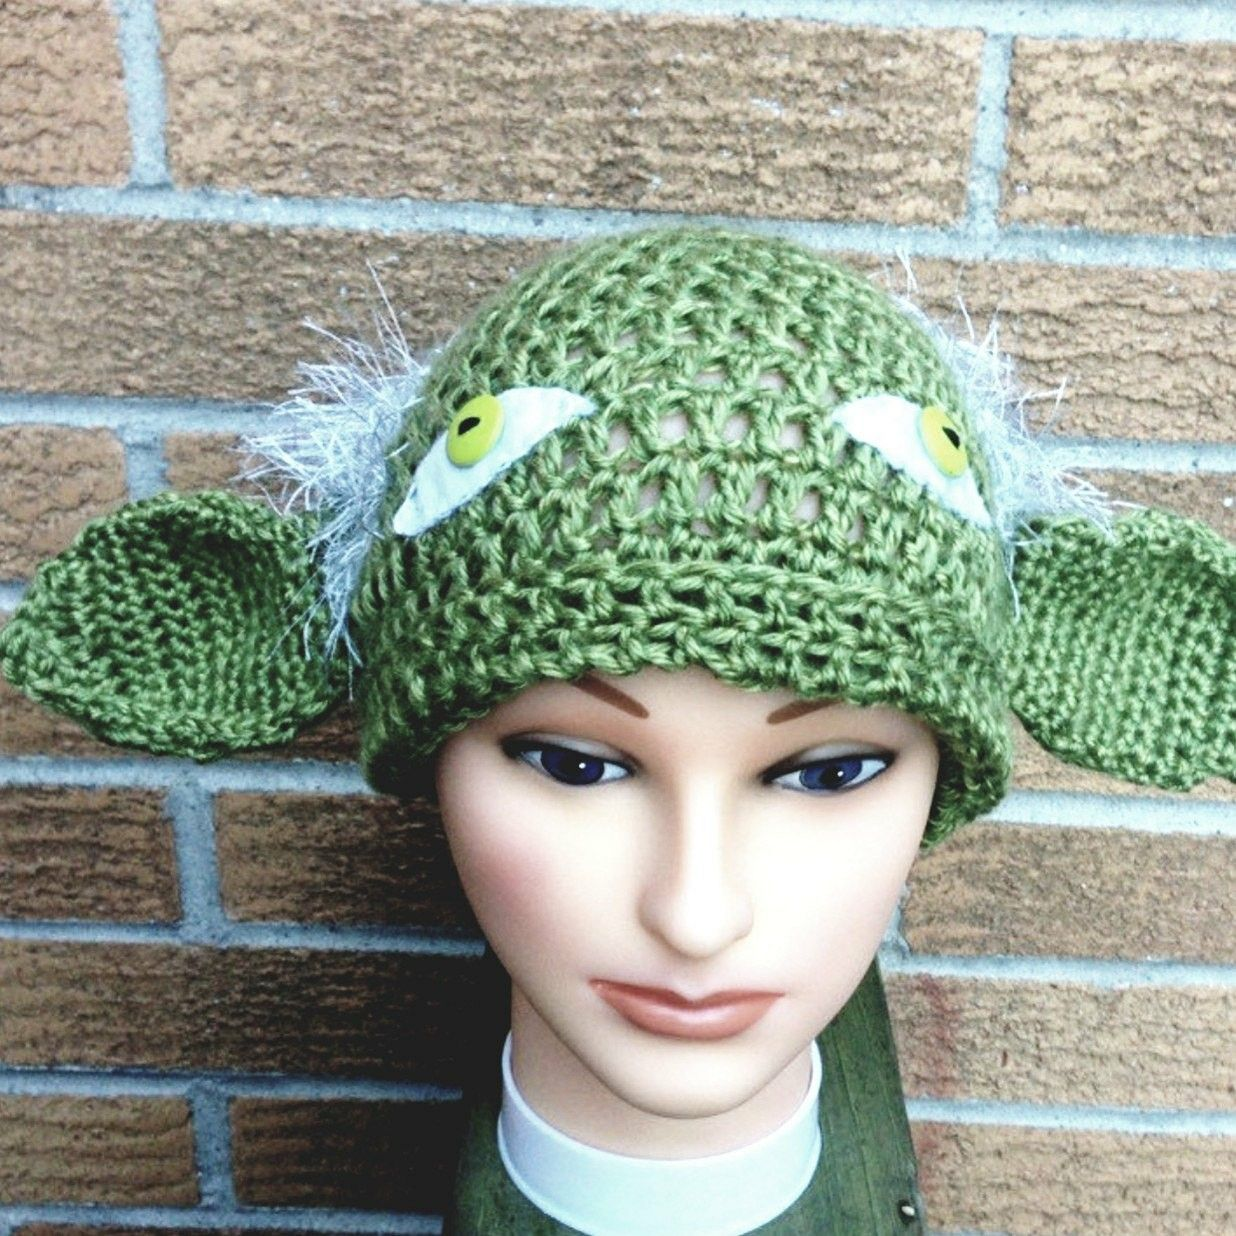 Get ready for Star Wars celebration, with yoda hat costume ...